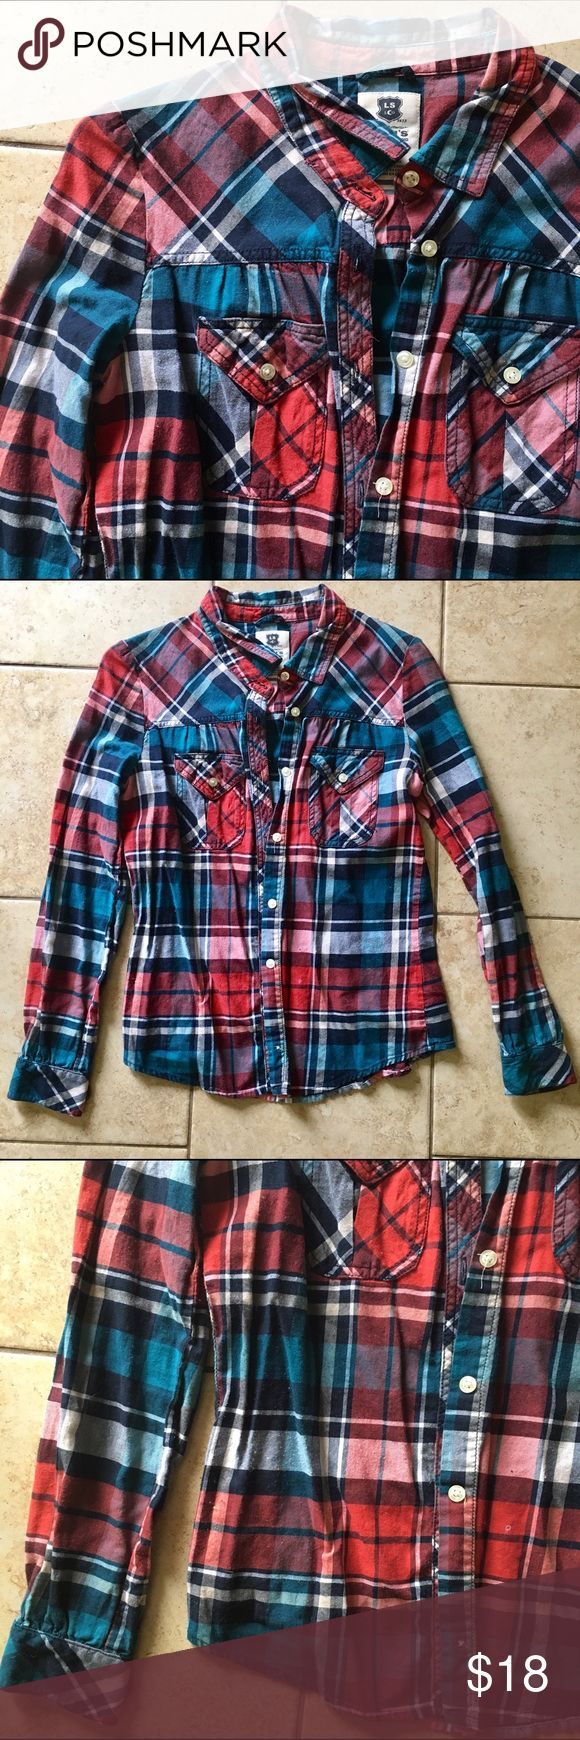 vibrant plaid flannel button-down Brand: Levi's Color: Reds & Blues Size: Small Material: 100% Cotton In excellent condition! Comfy and gorgeous coloring. Try it under another denim or plain button down with the sleeves rolled. And a statement necklace Levi's Tops Button Down Shirts